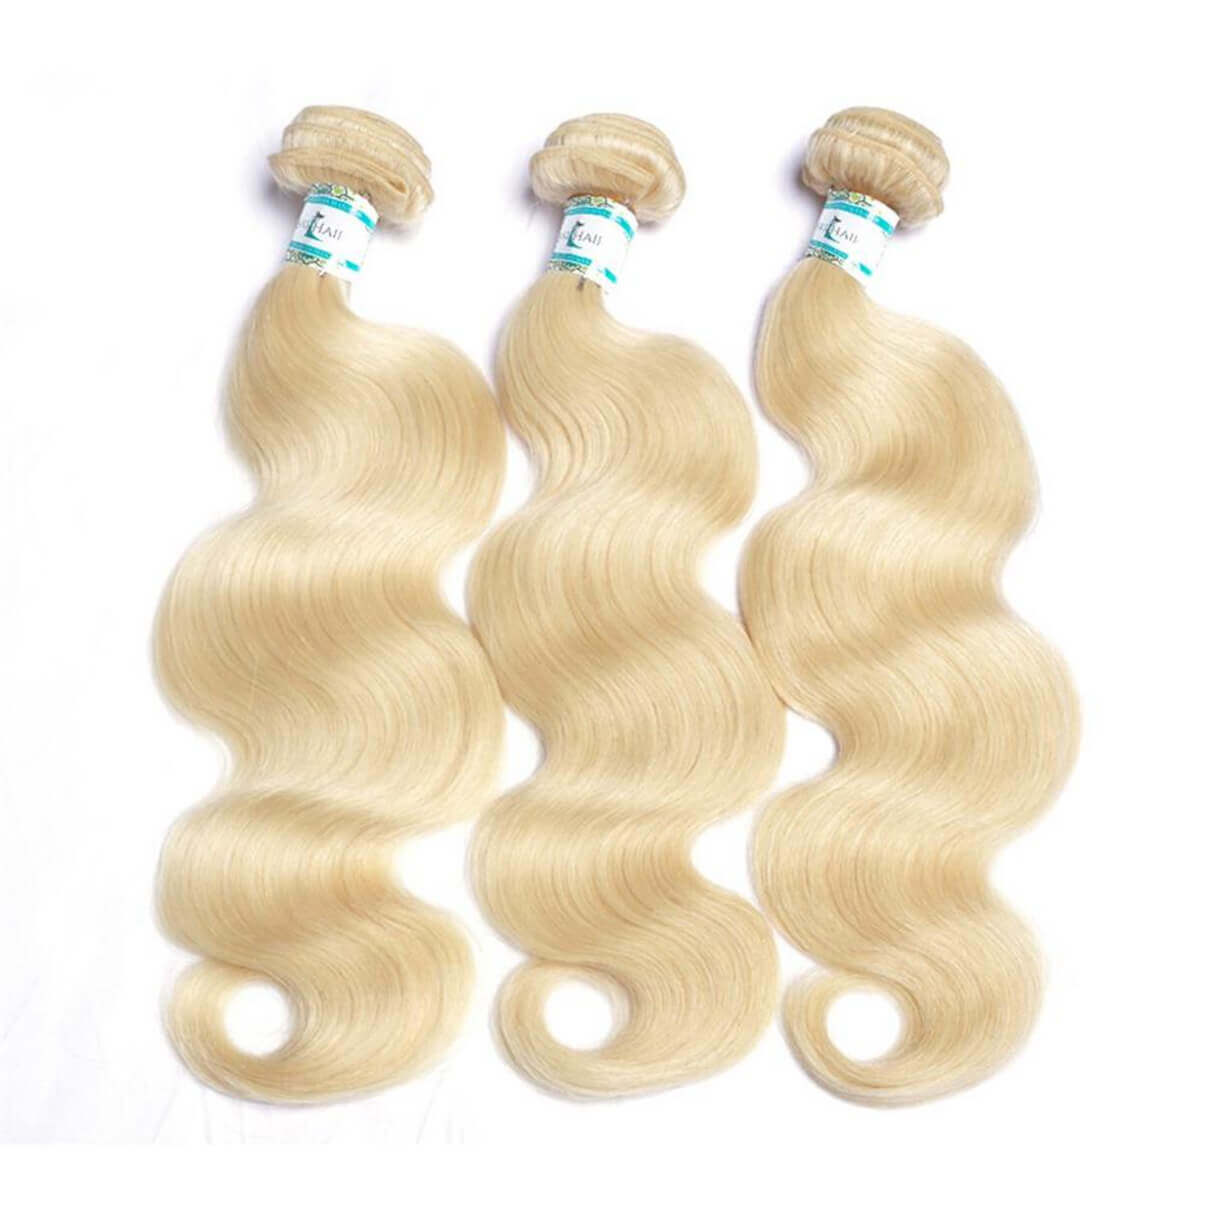 Lakihair 10A 613 Blonde Hair Bundles Body Wave Virgin Brazilian Hair 3 Bundles Hair Extensions